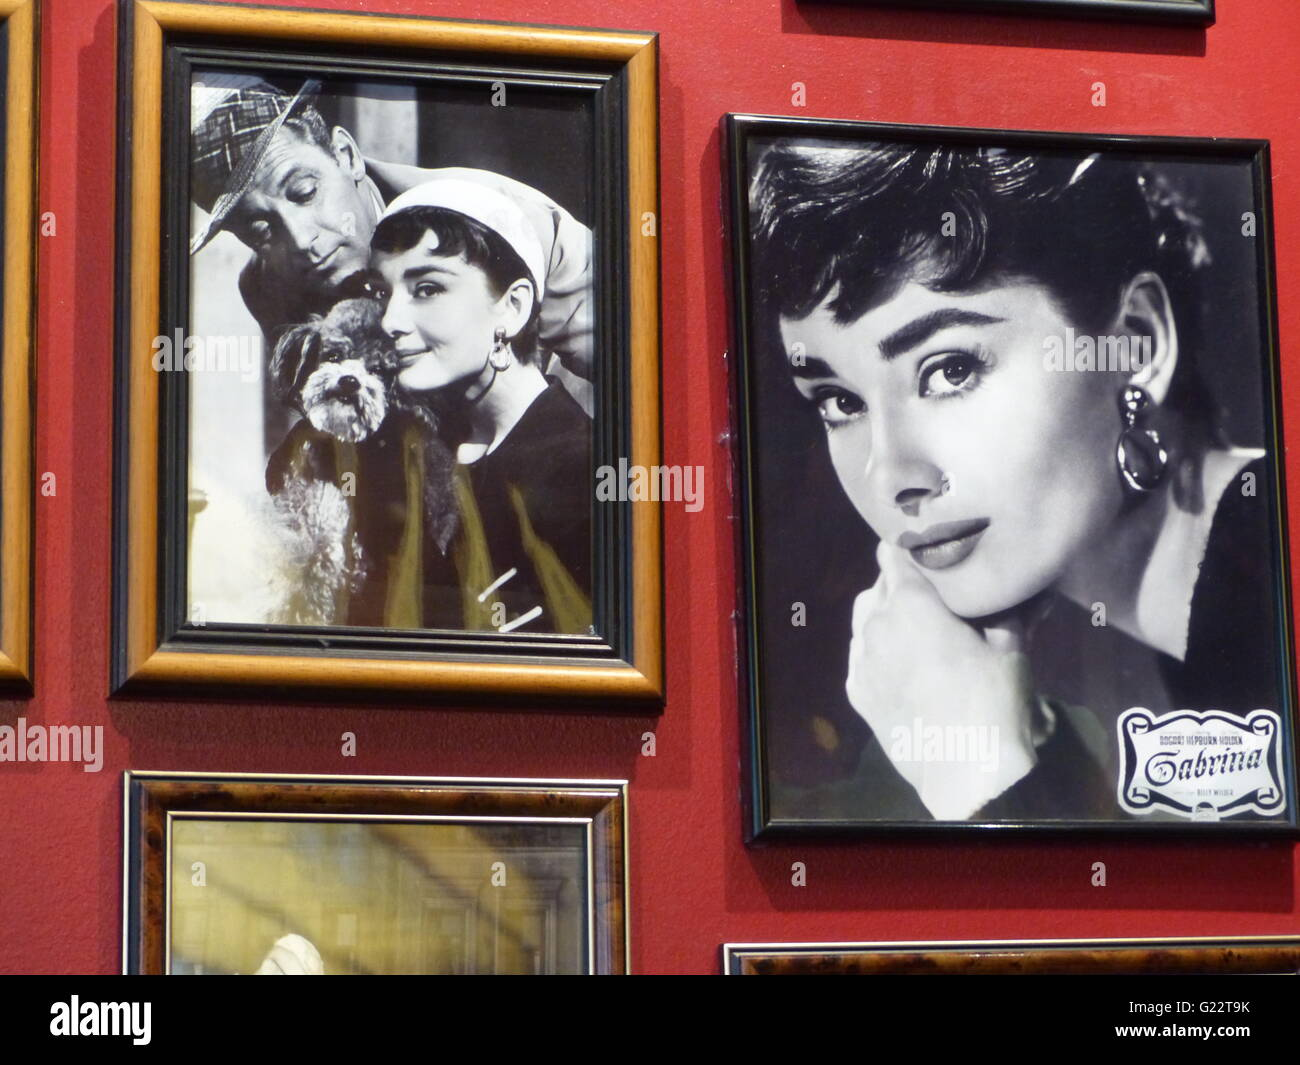 Berlin - Germany. Billy Wilder bar and restaurant with Audrey Hepburn photographs - Stock Image